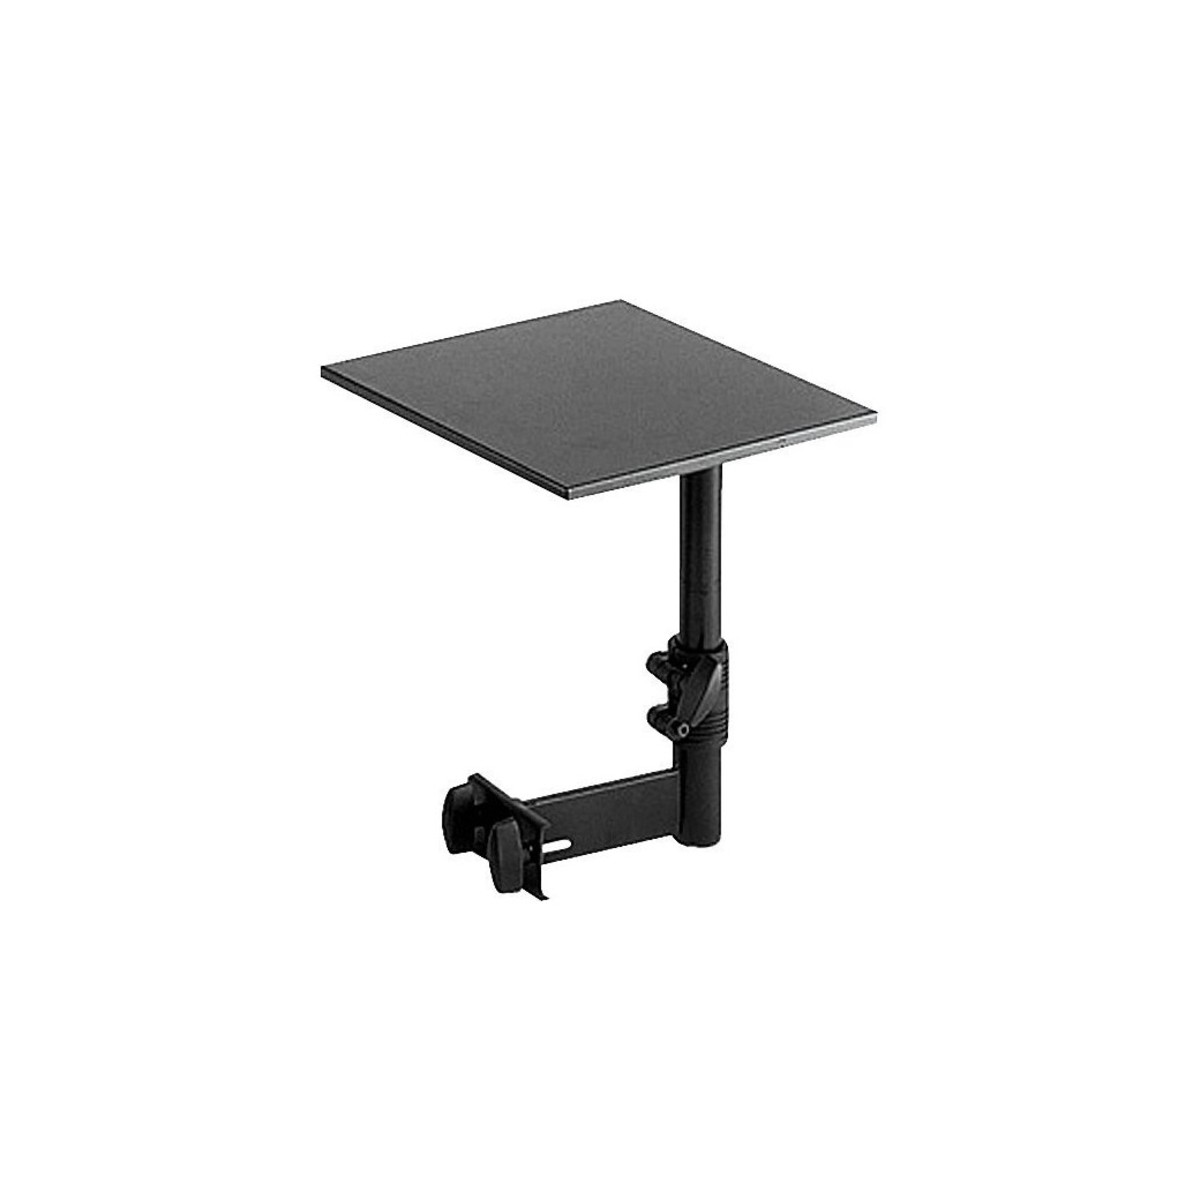 Quiklok Z 731 Adjustable Utility Shelf